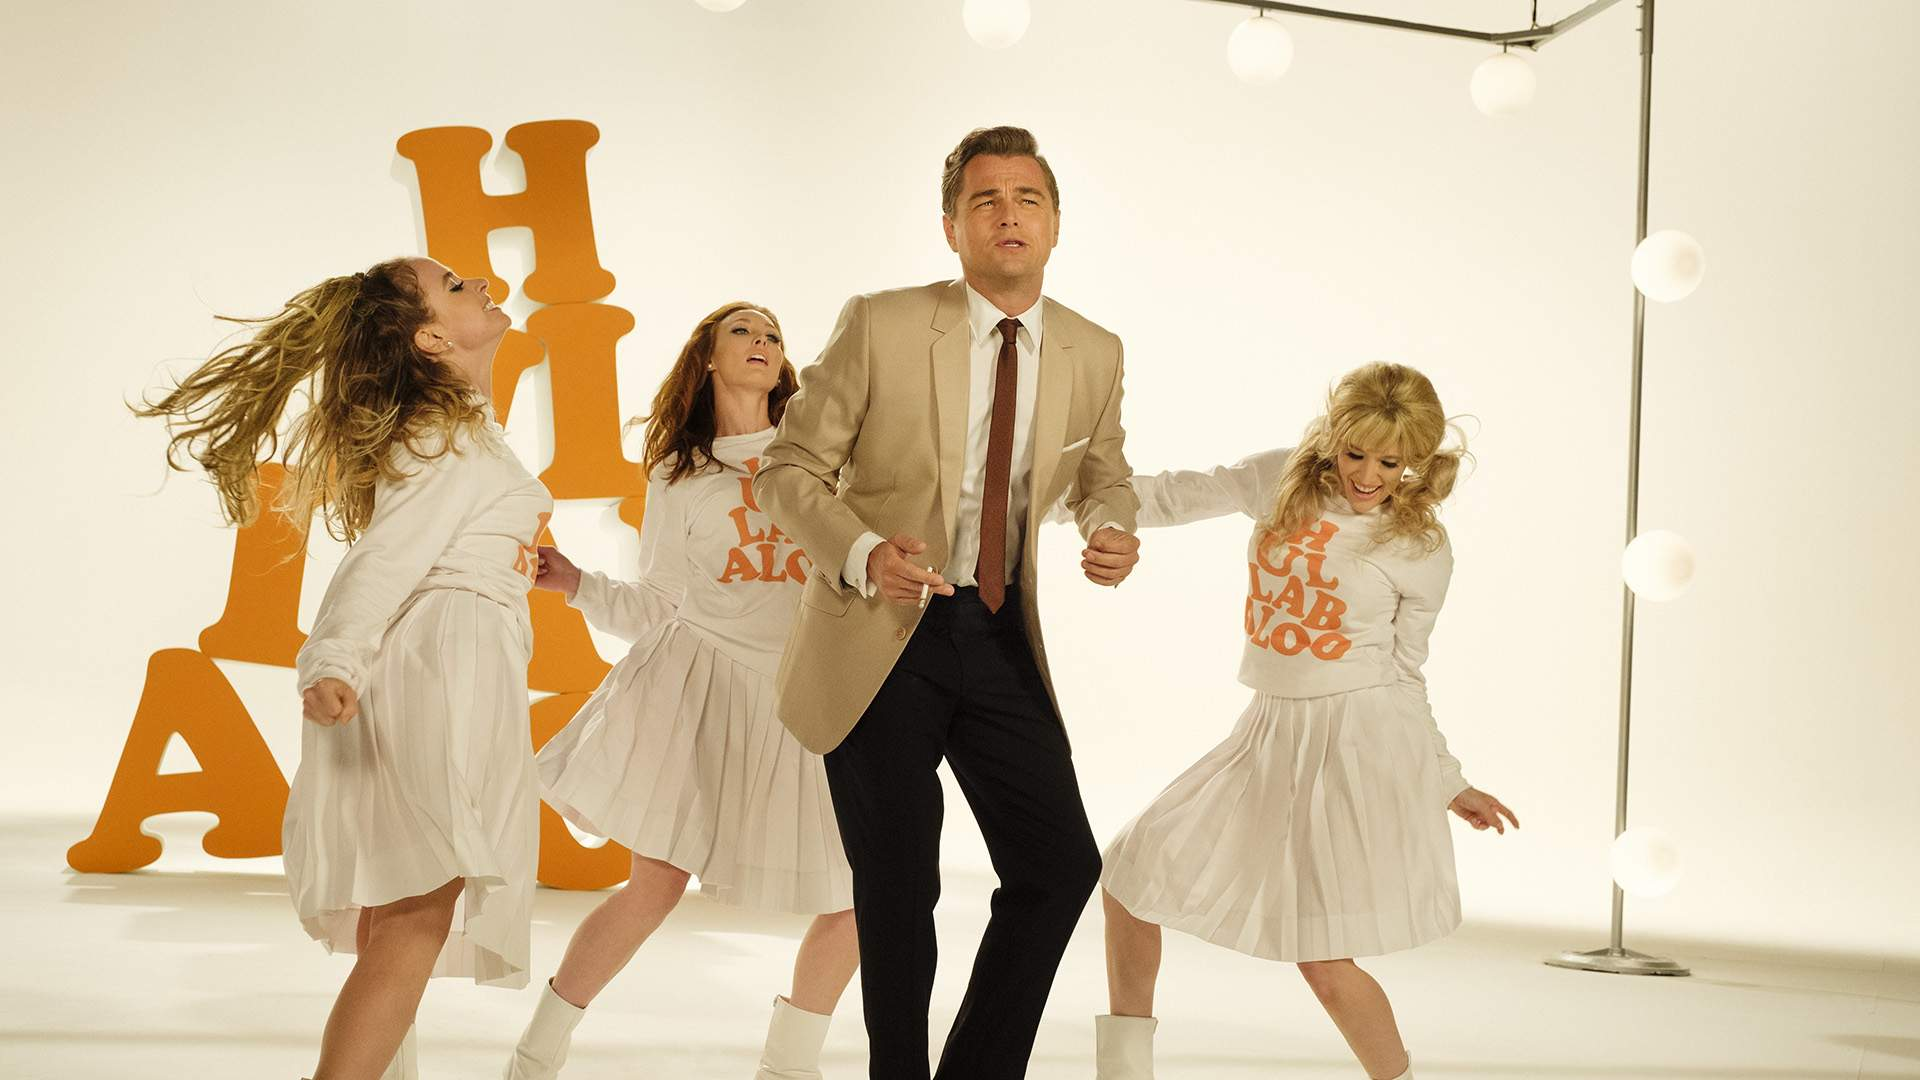 The First Teaser for Quentin Tarantino's 60s Crime Caper 'Once Upon a Time in Hollywood' Is Here